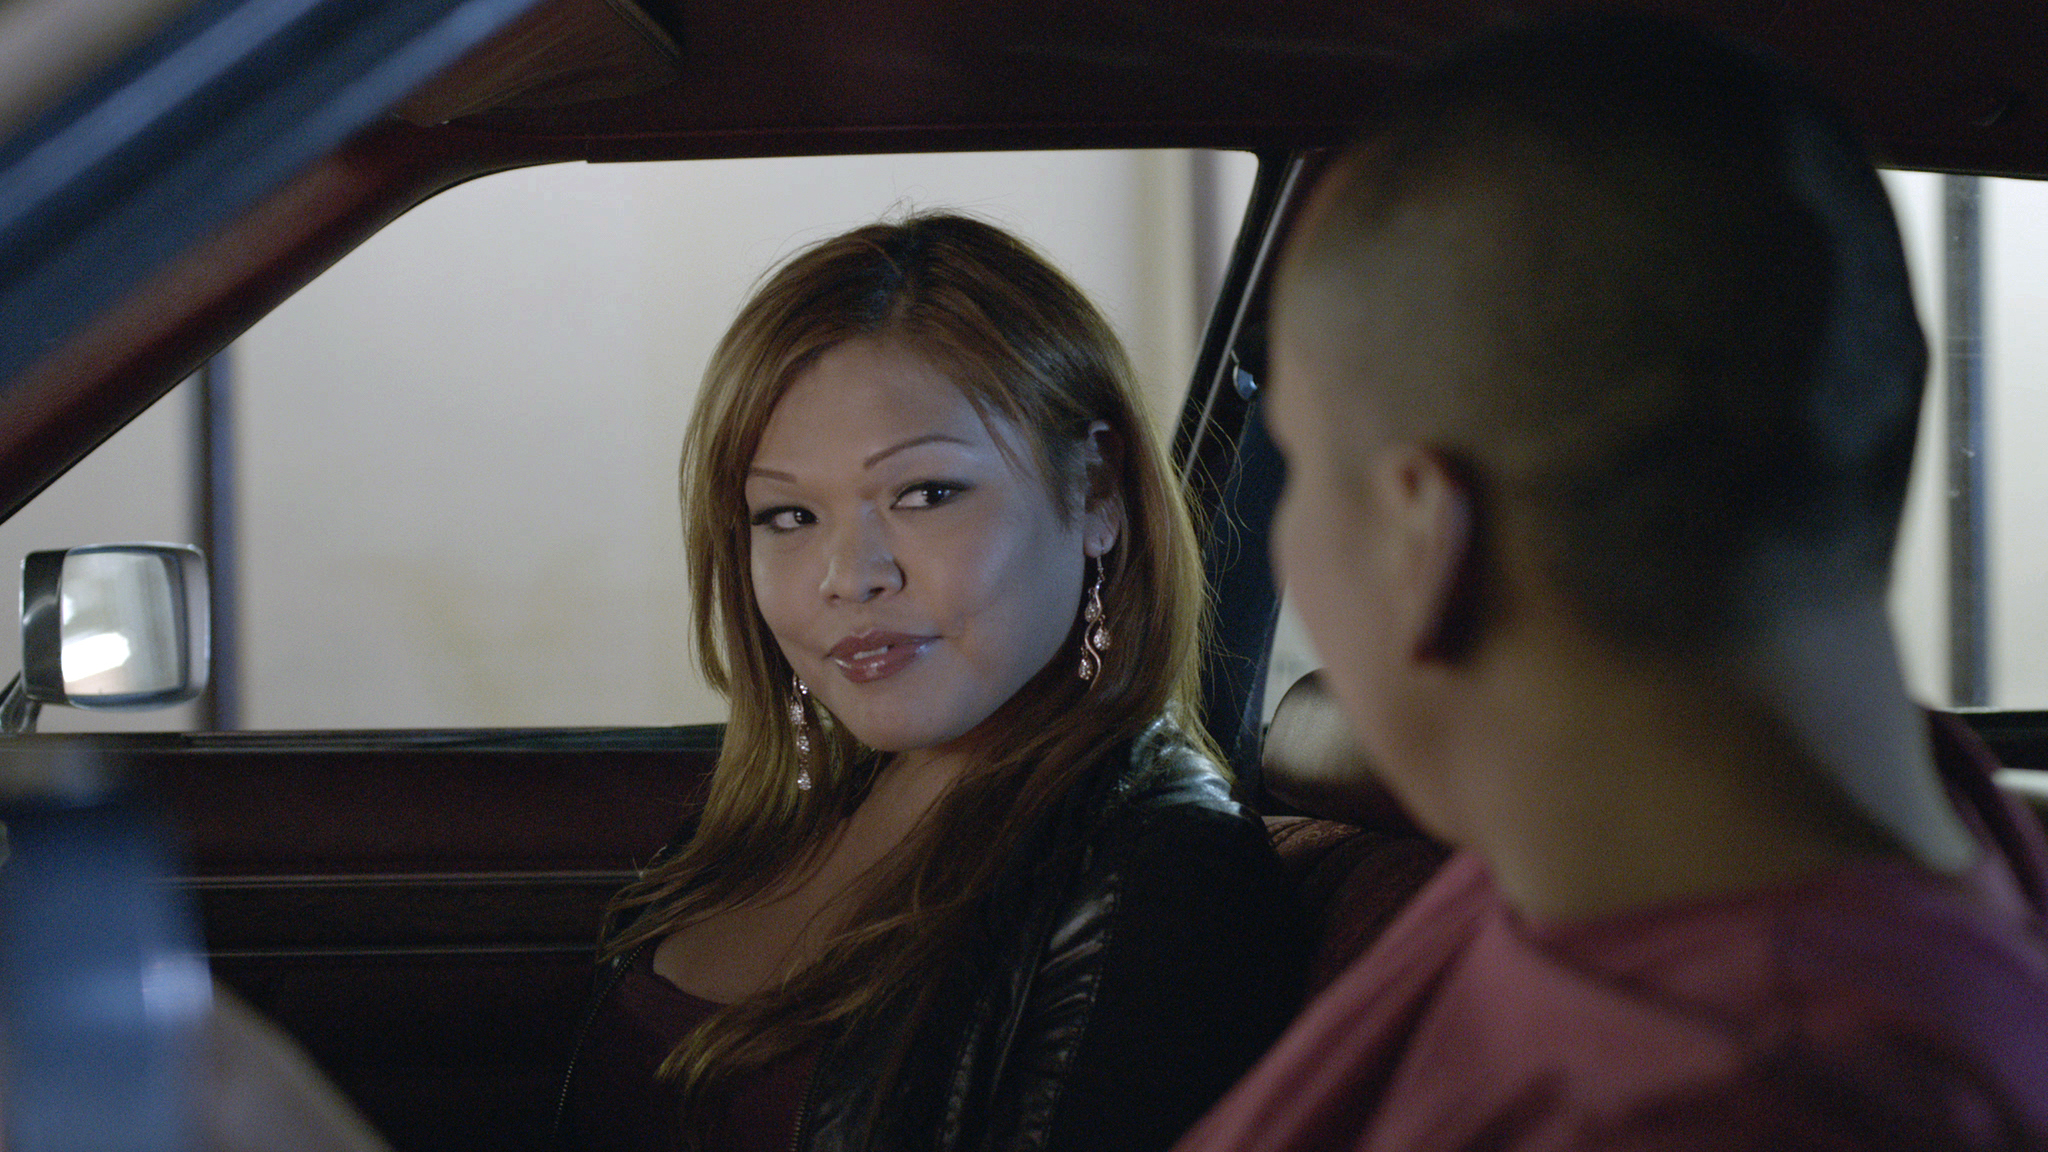 Carmen Moore as Felixia John in Drunktown's Finest